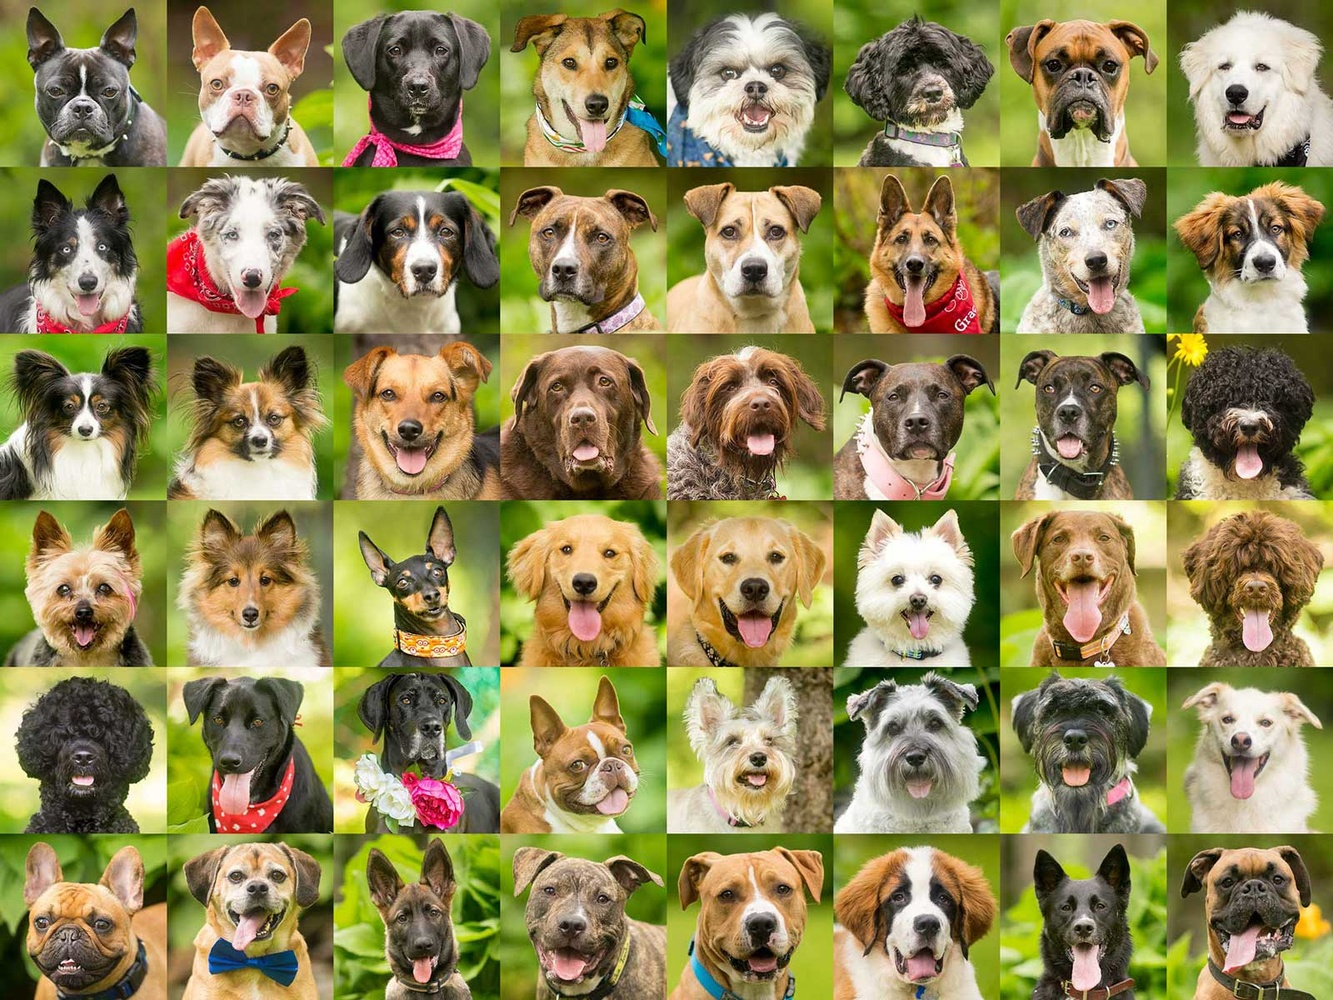 headshots of various dog breeds